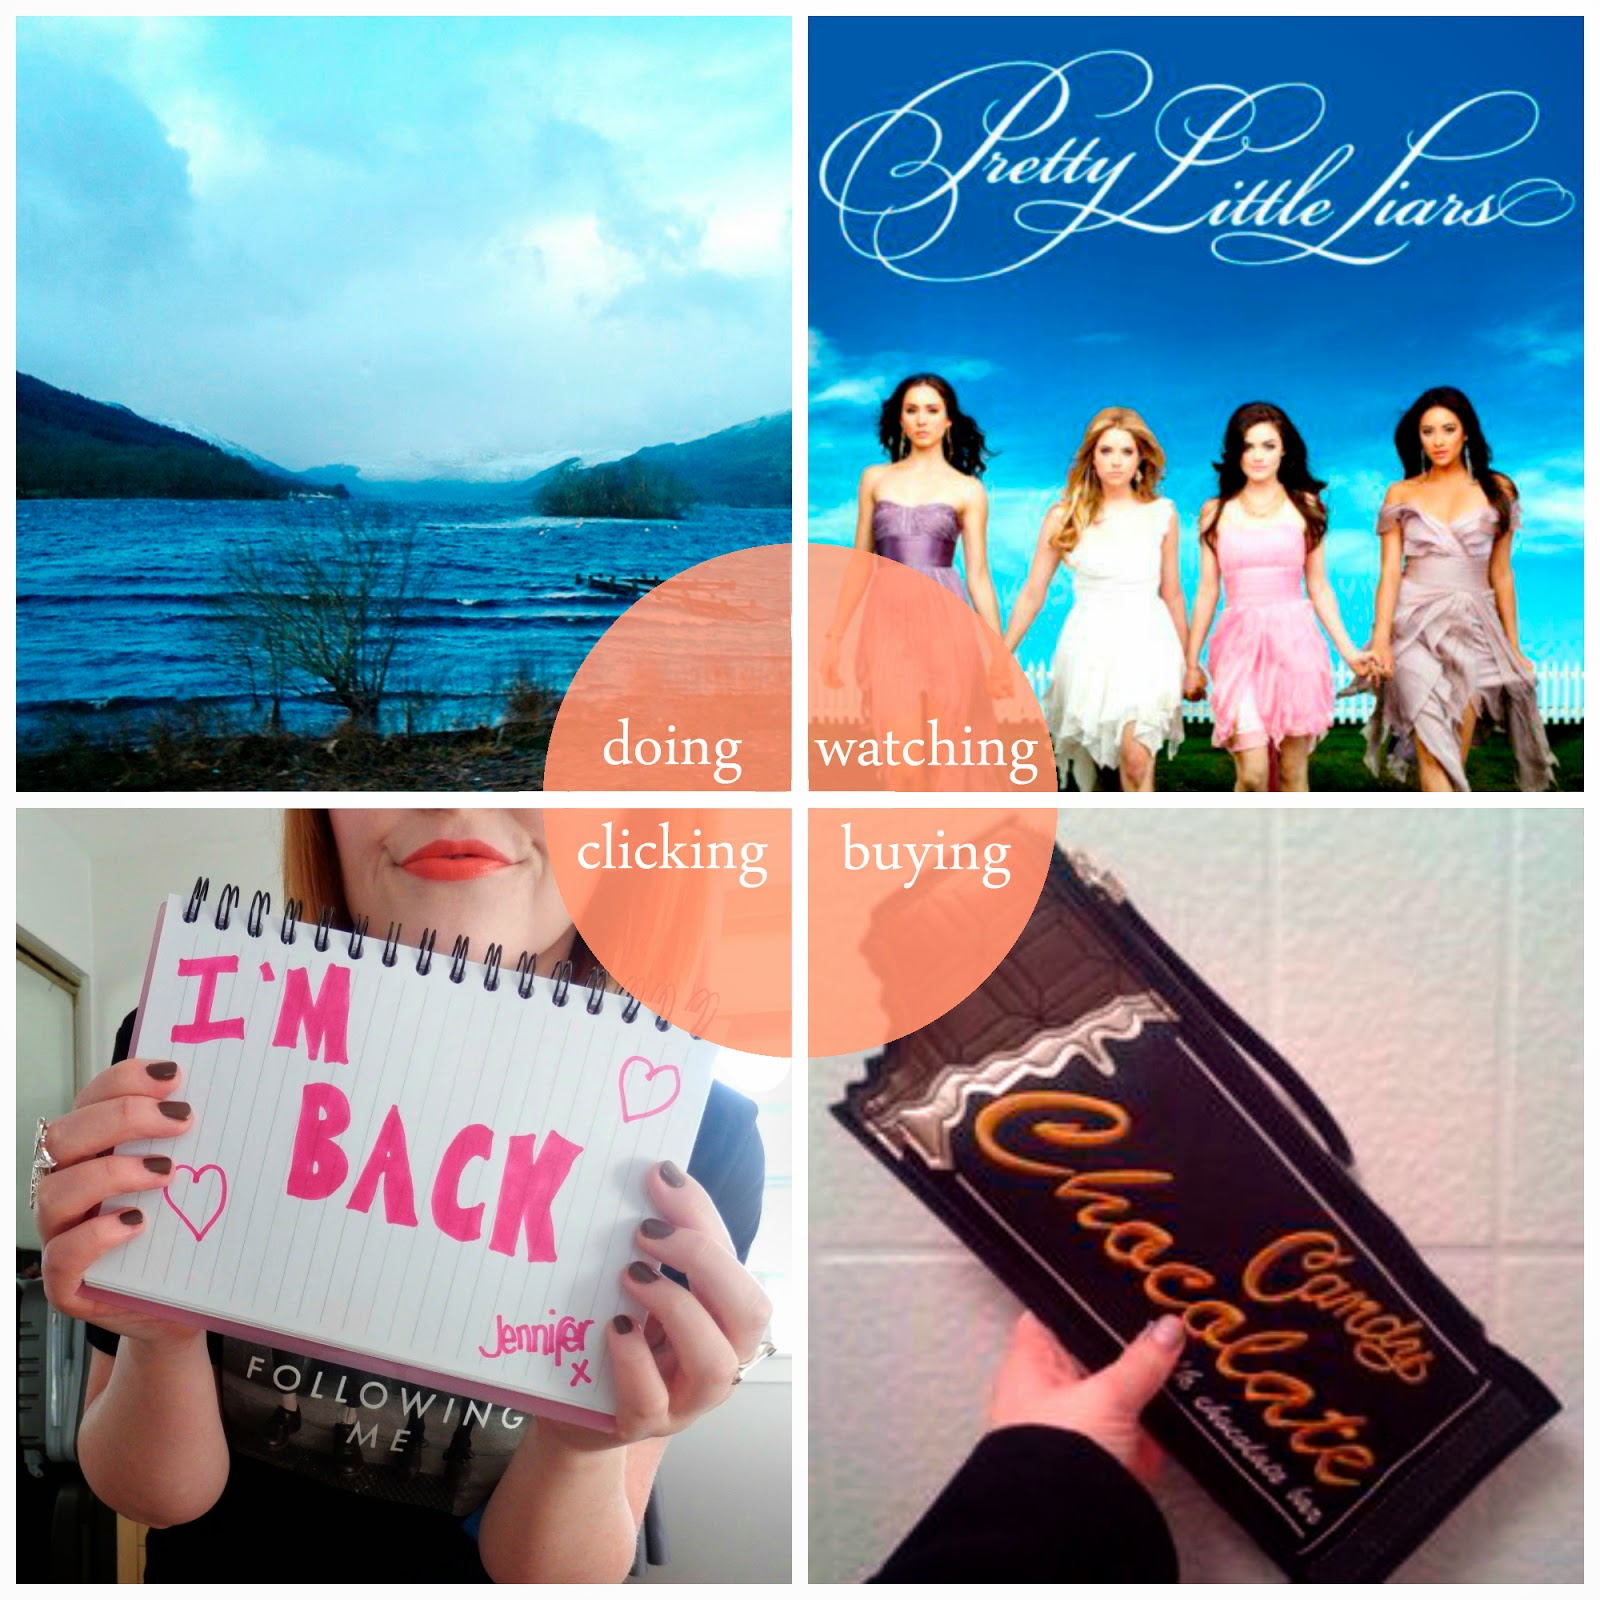 Round Up, January, January highlights, Oban, Pretty Little Liars, New Look chocolate bar bag, Glasgow Fashion Girl